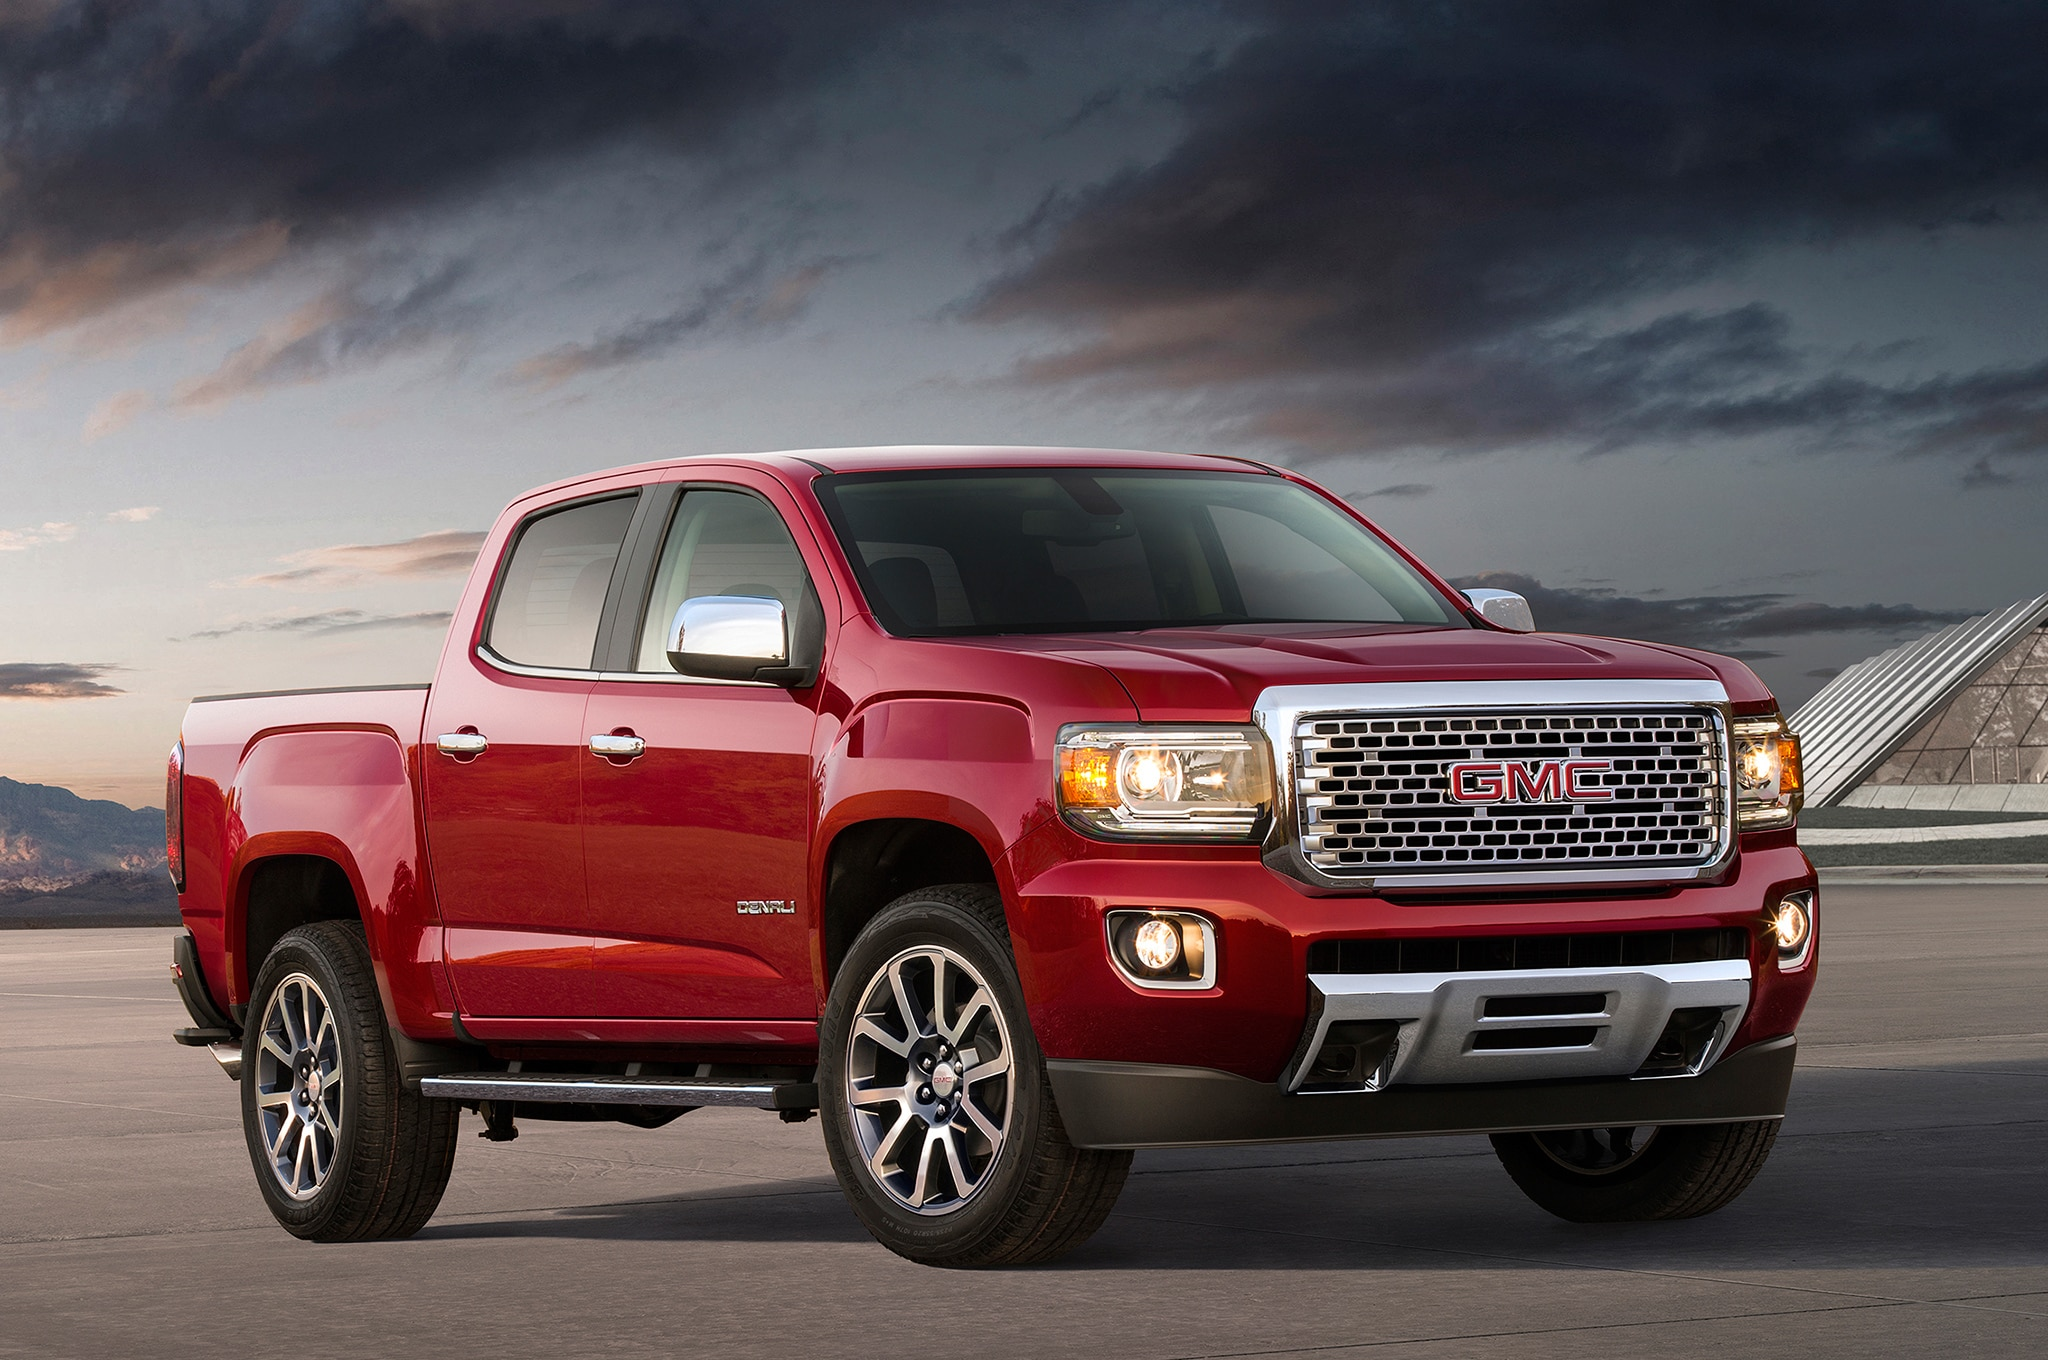 2017 gmc canyon denali 2016 sierra denali ultimate editions revealed. Black Bedroom Furniture Sets. Home Design Ideas